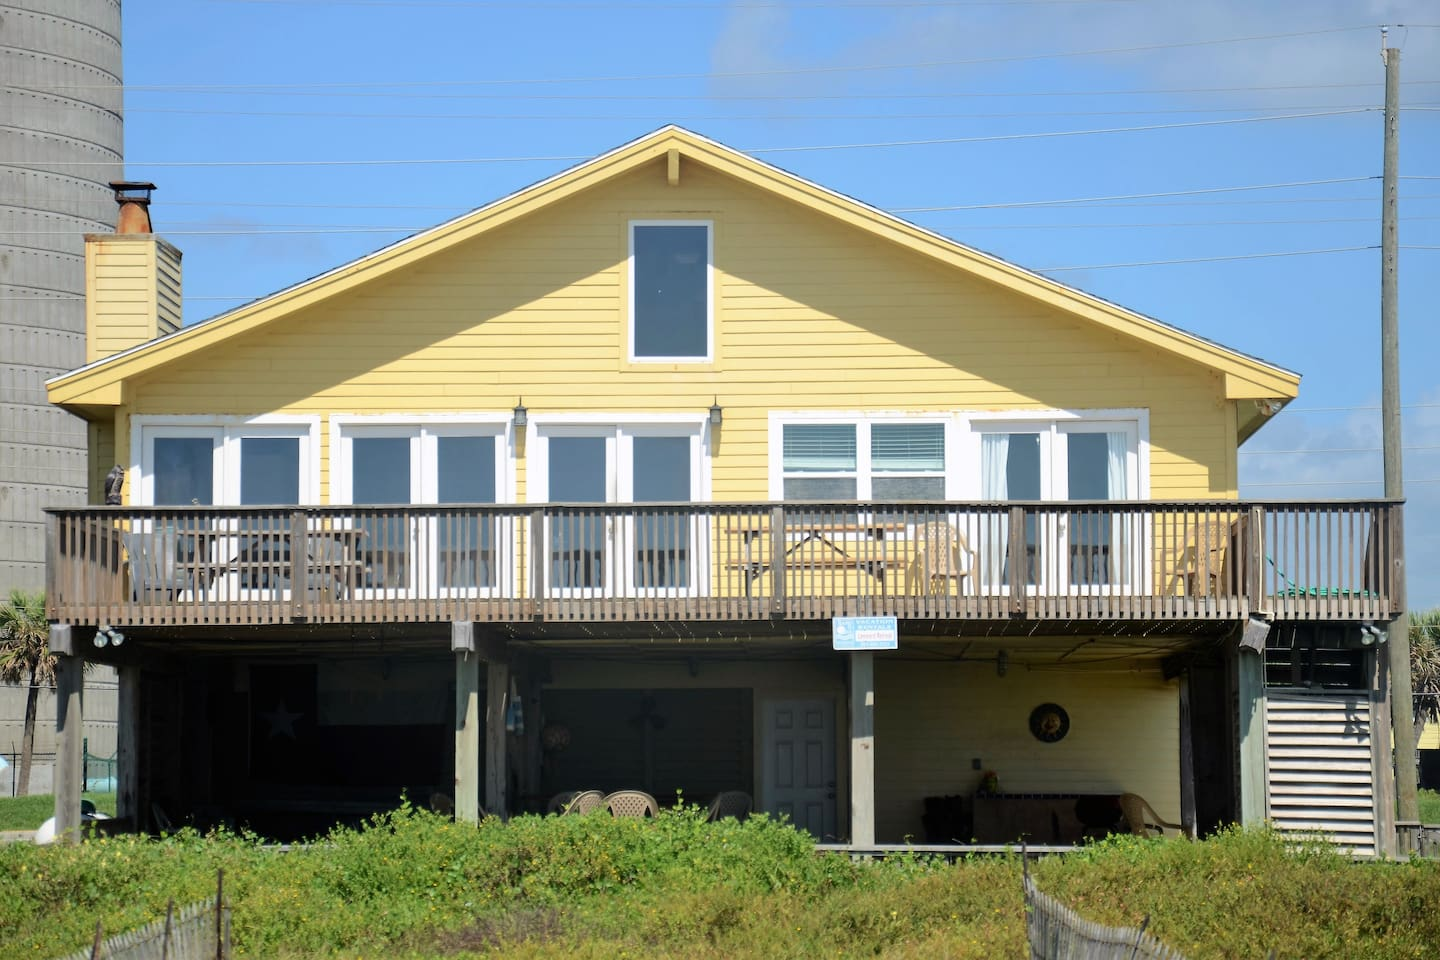 Leeward Retreat has all the features you look for in a fine beach front vacation property.  The sundeck has 2 large picnic tables and space to lounge and enjoy the  amazing views.